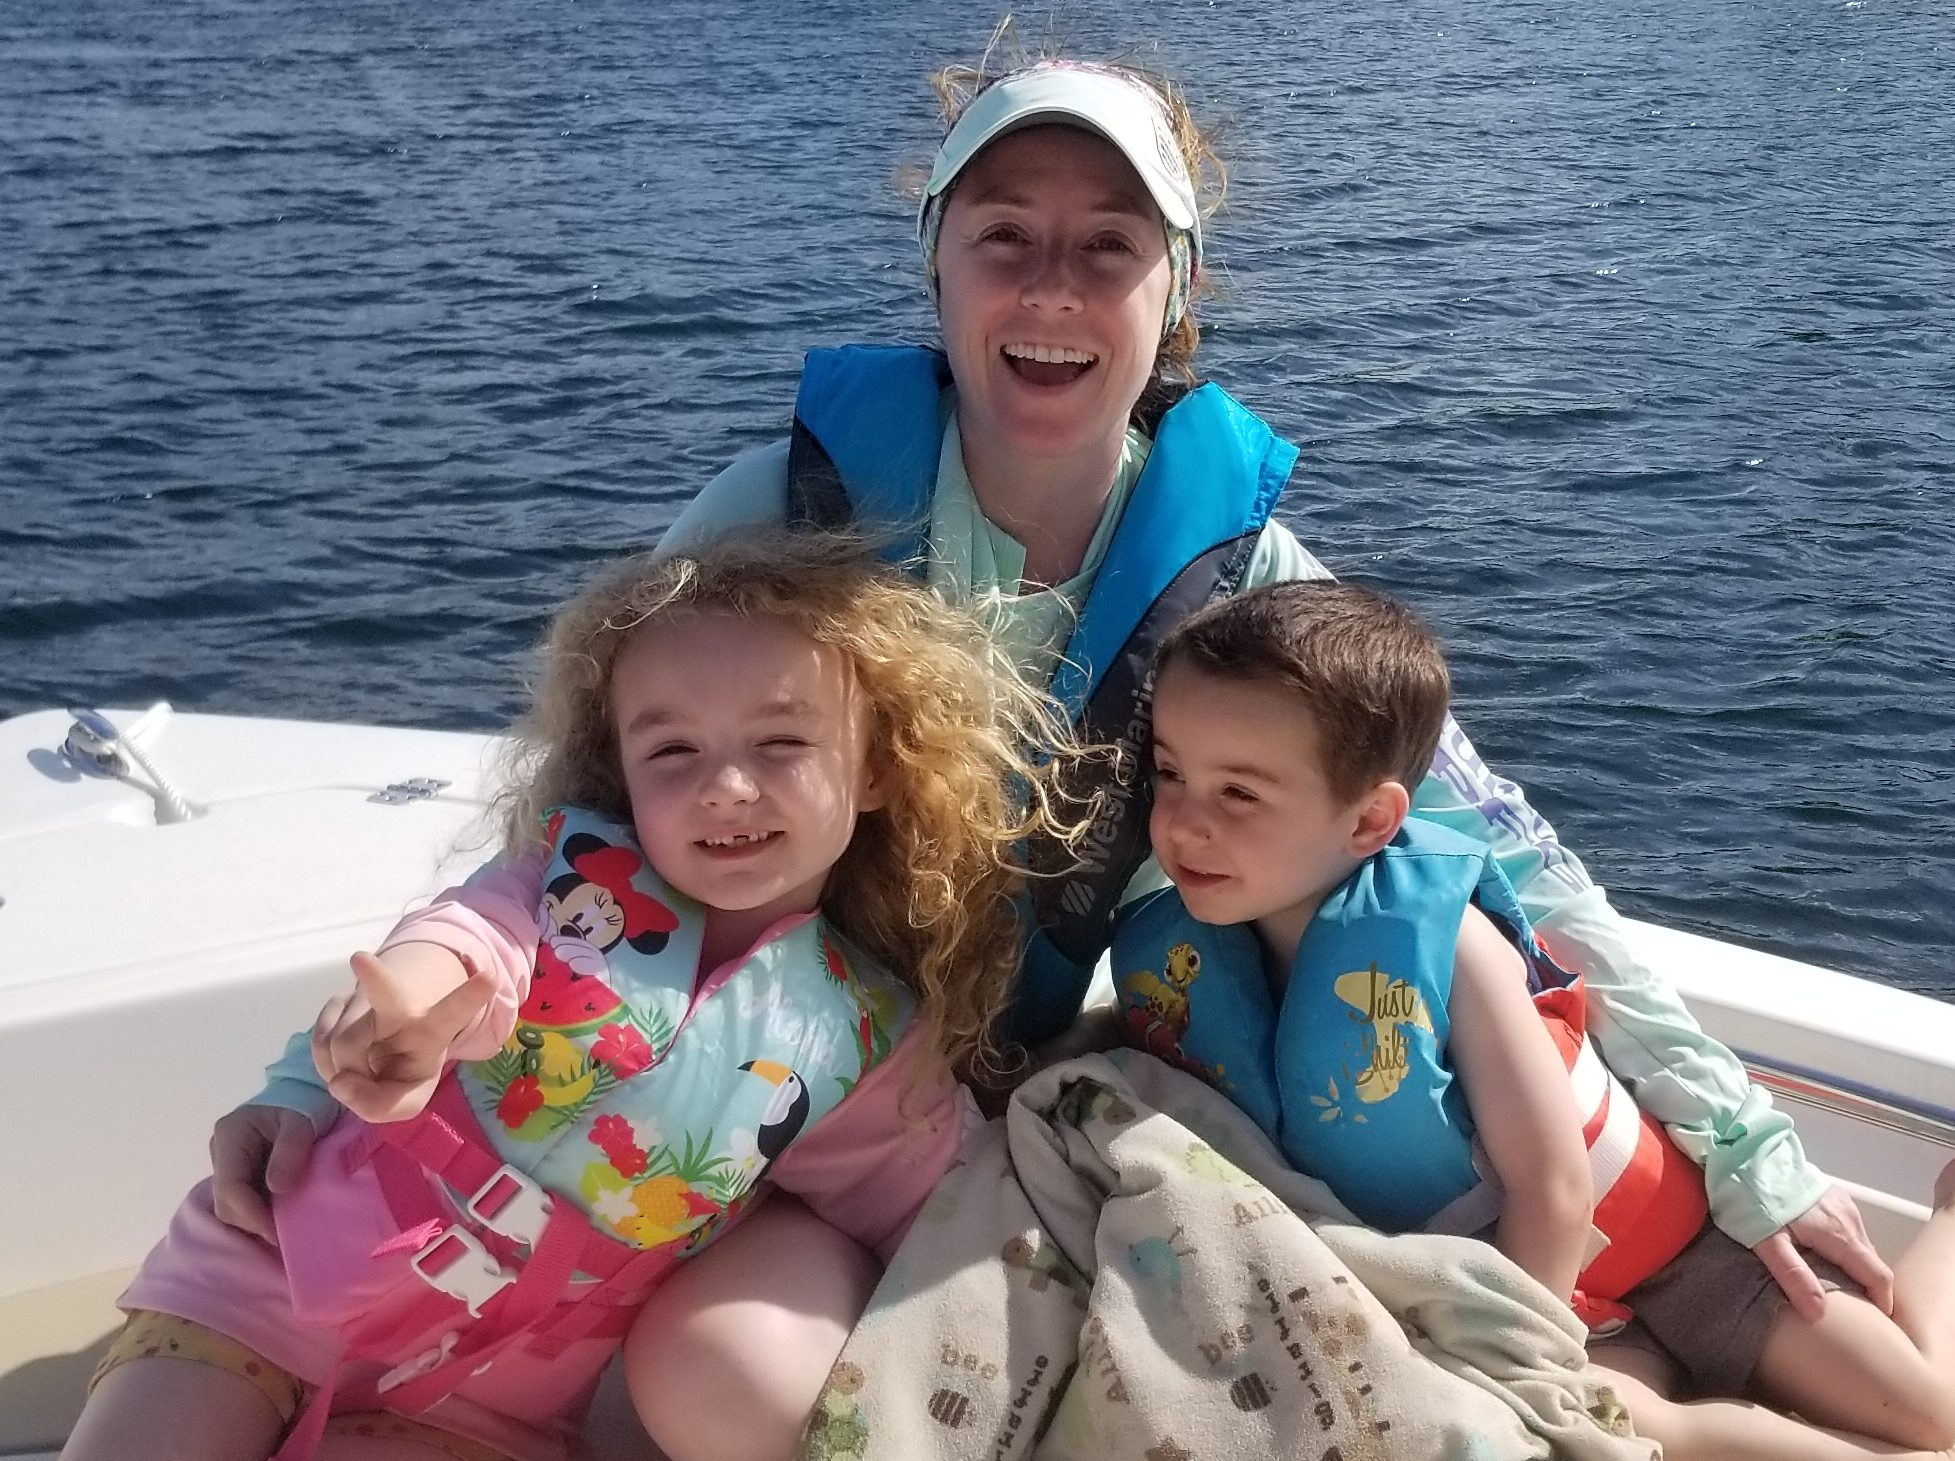 Woman with her two kids on a boat